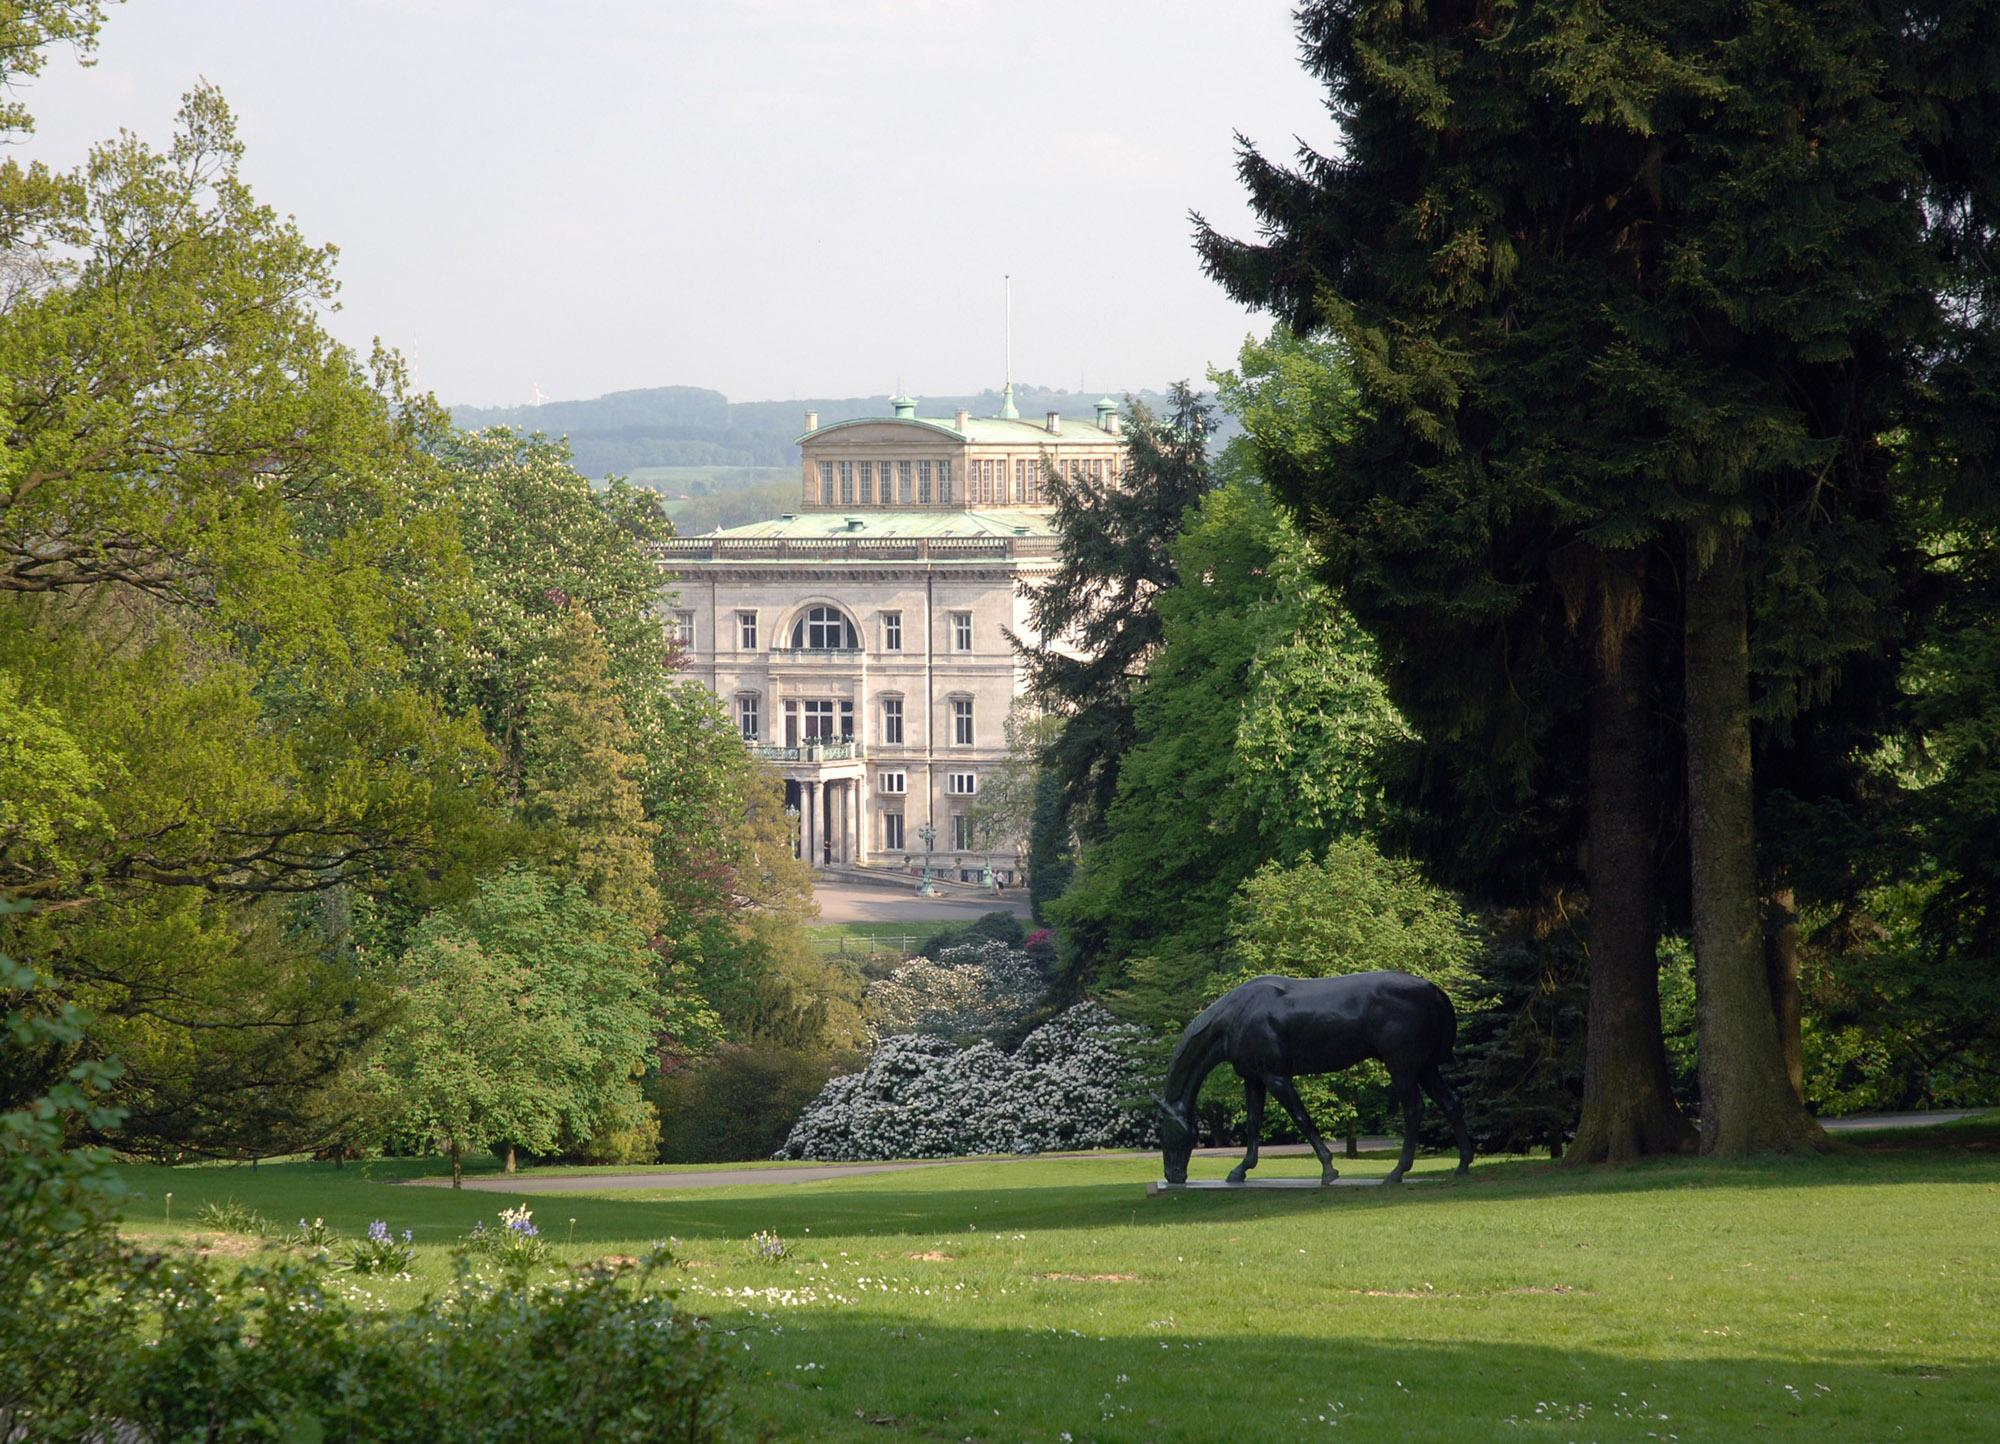 Relaxing views to Villa Hügel, like the one from the horse sculpture by Albert Hinrich Hussmann the foreground, greet visitors. – © Editorial Staff / City of Essen